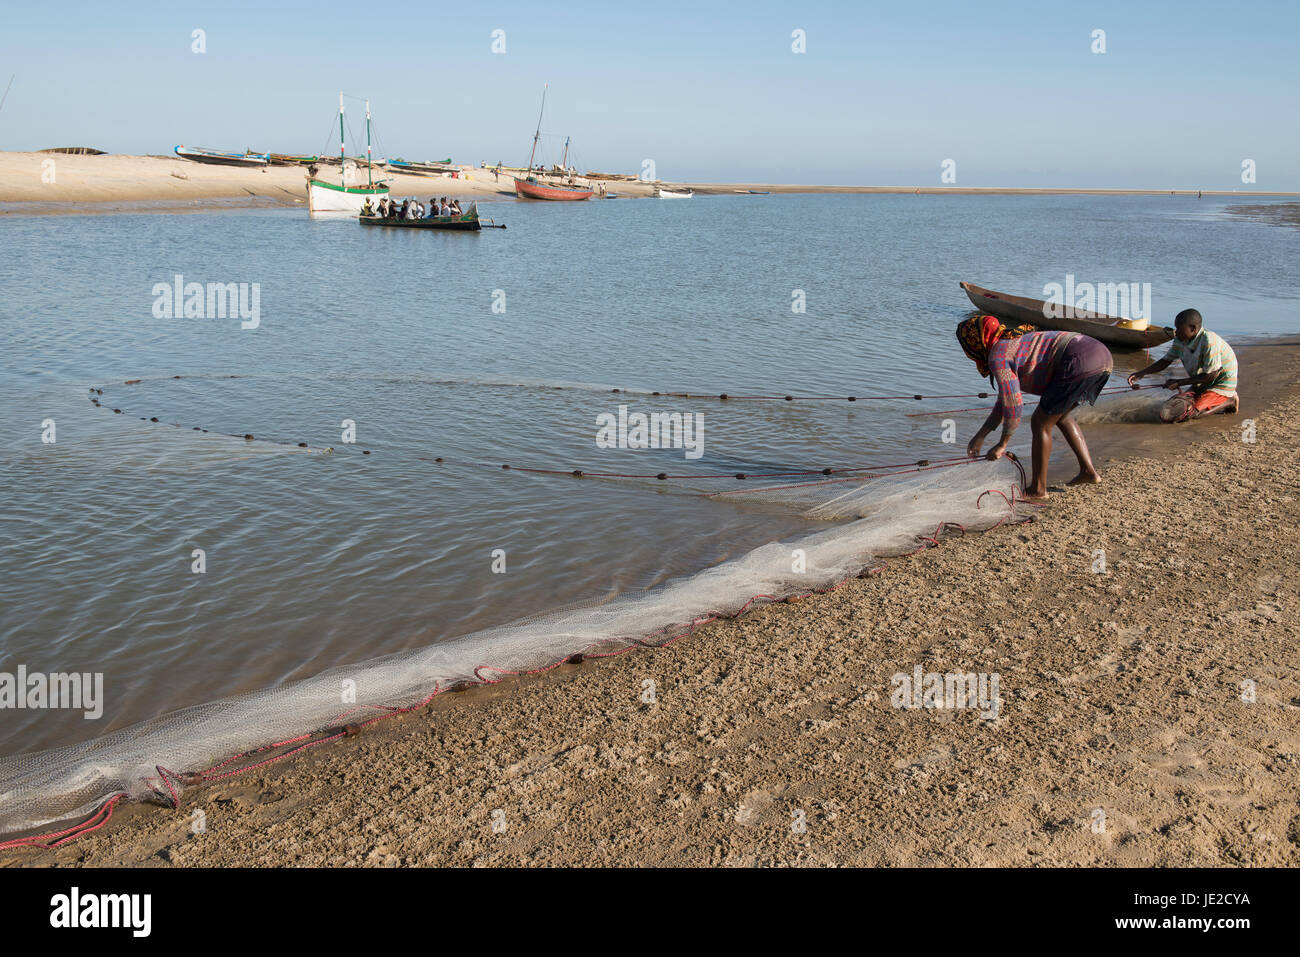 Malagasy couple working their fish nets, Morondava, Madagascar - Stock Image